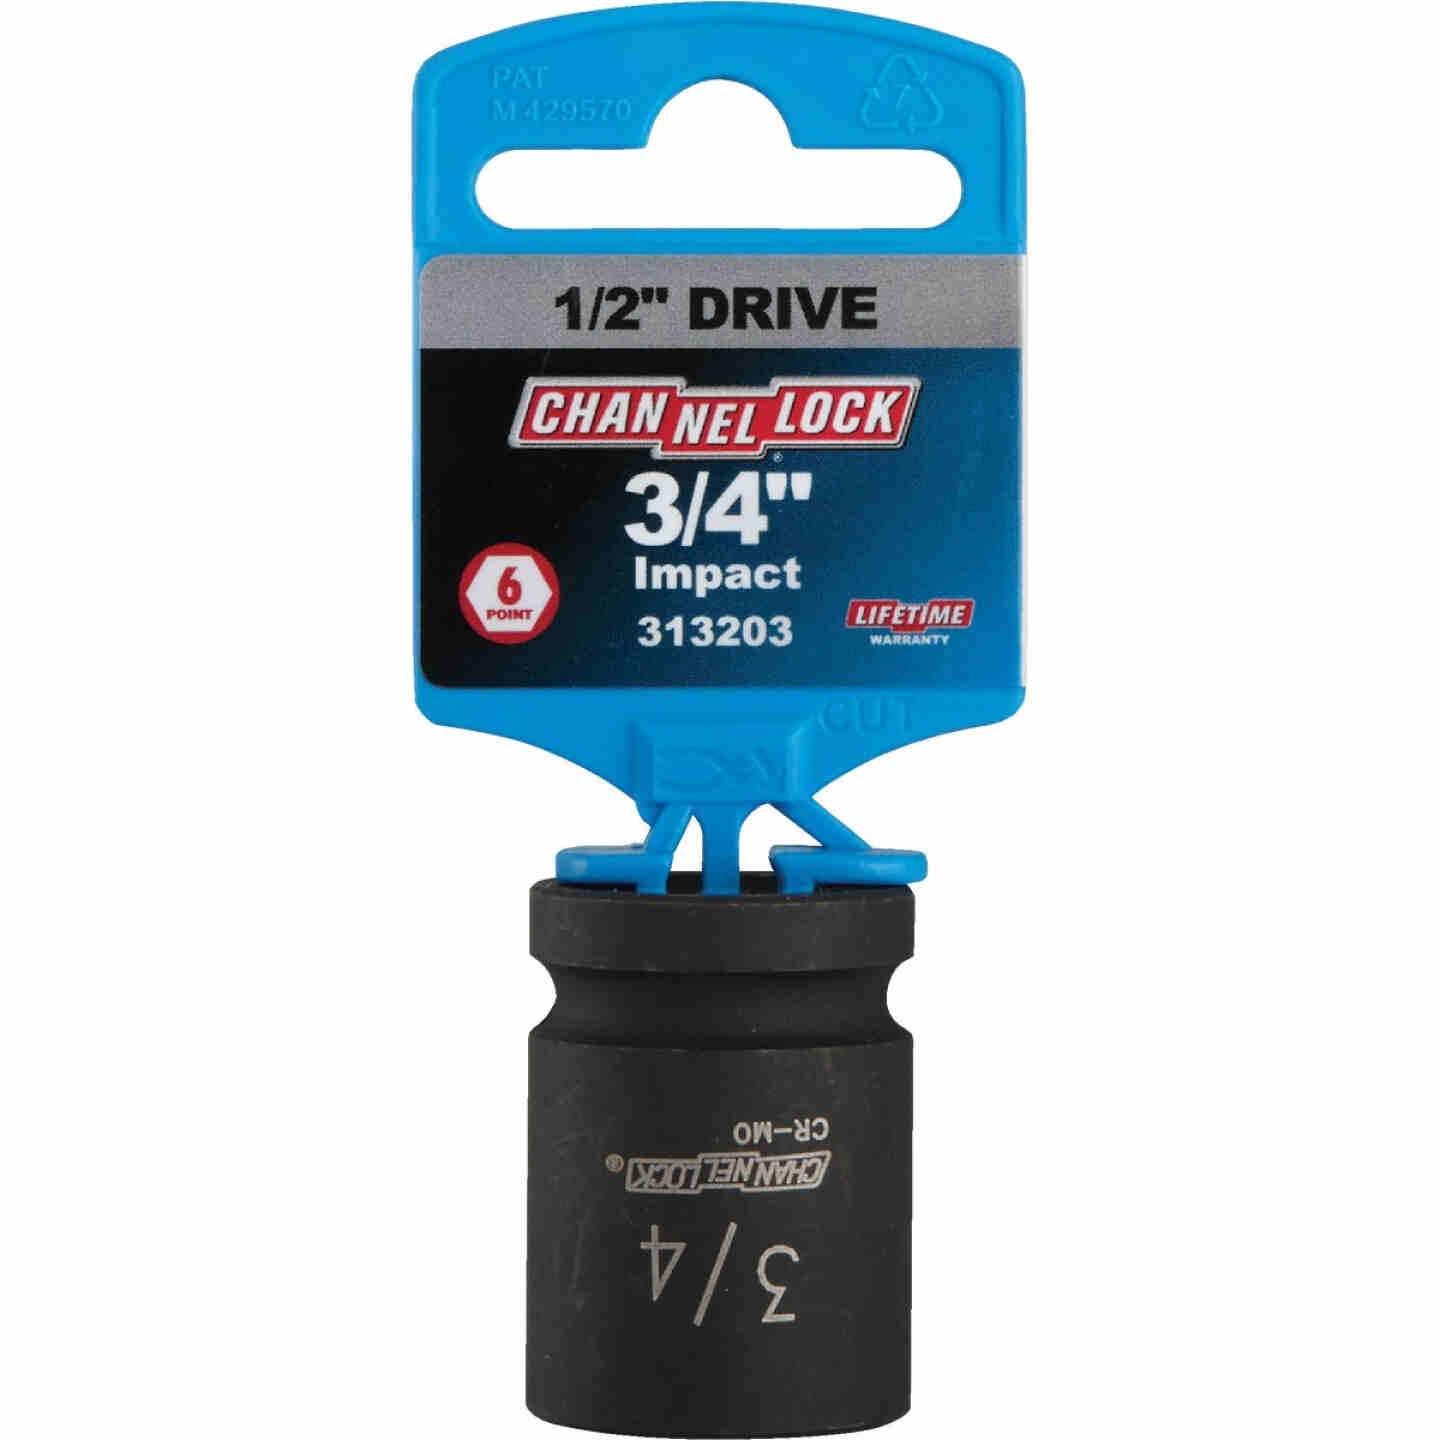 Channellock 1/2 In. Drive 3/4 In. 6-Point Shallow Standard Impact Socket Image 2